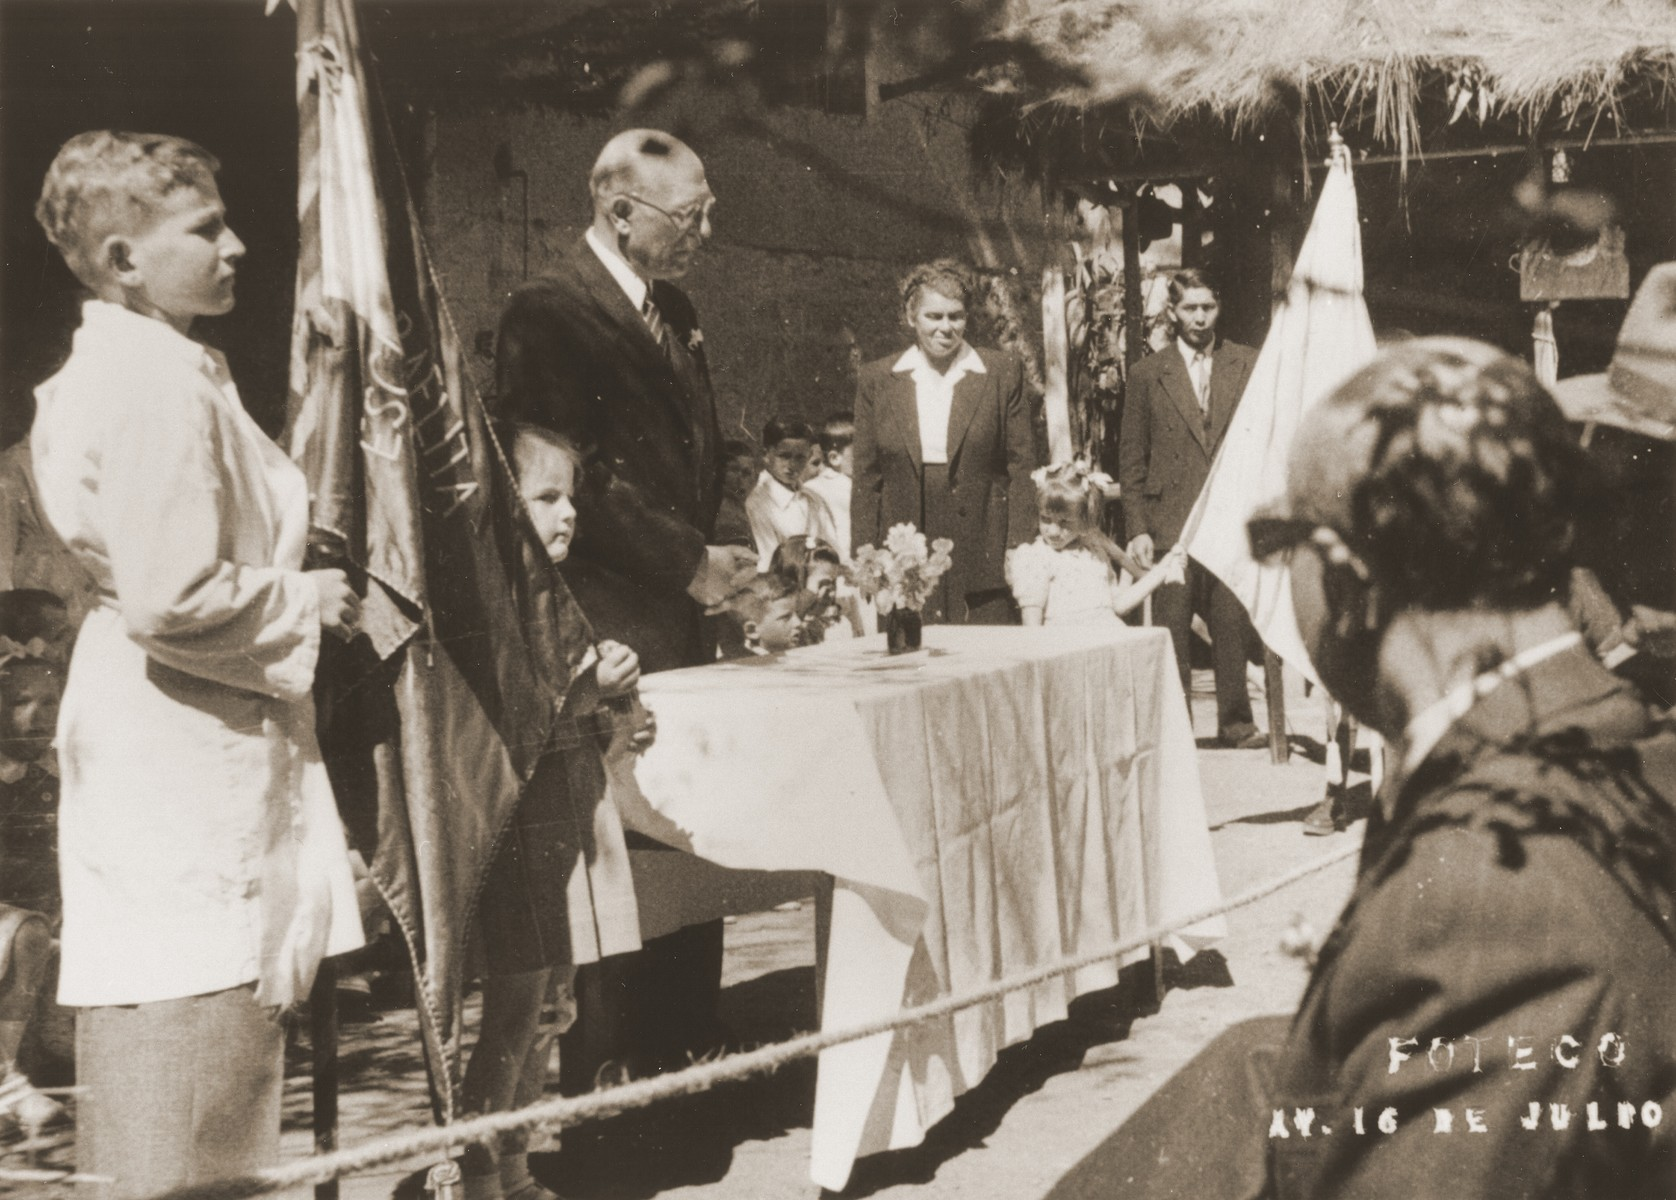 The principal of the Escuela Boliviana Israelita (the Jewish primary school in Bolivia) delivers a speech at an outdoor graduation ceremony.  Among those pictured is Elly Spitzer (second from the left, holding the flag).